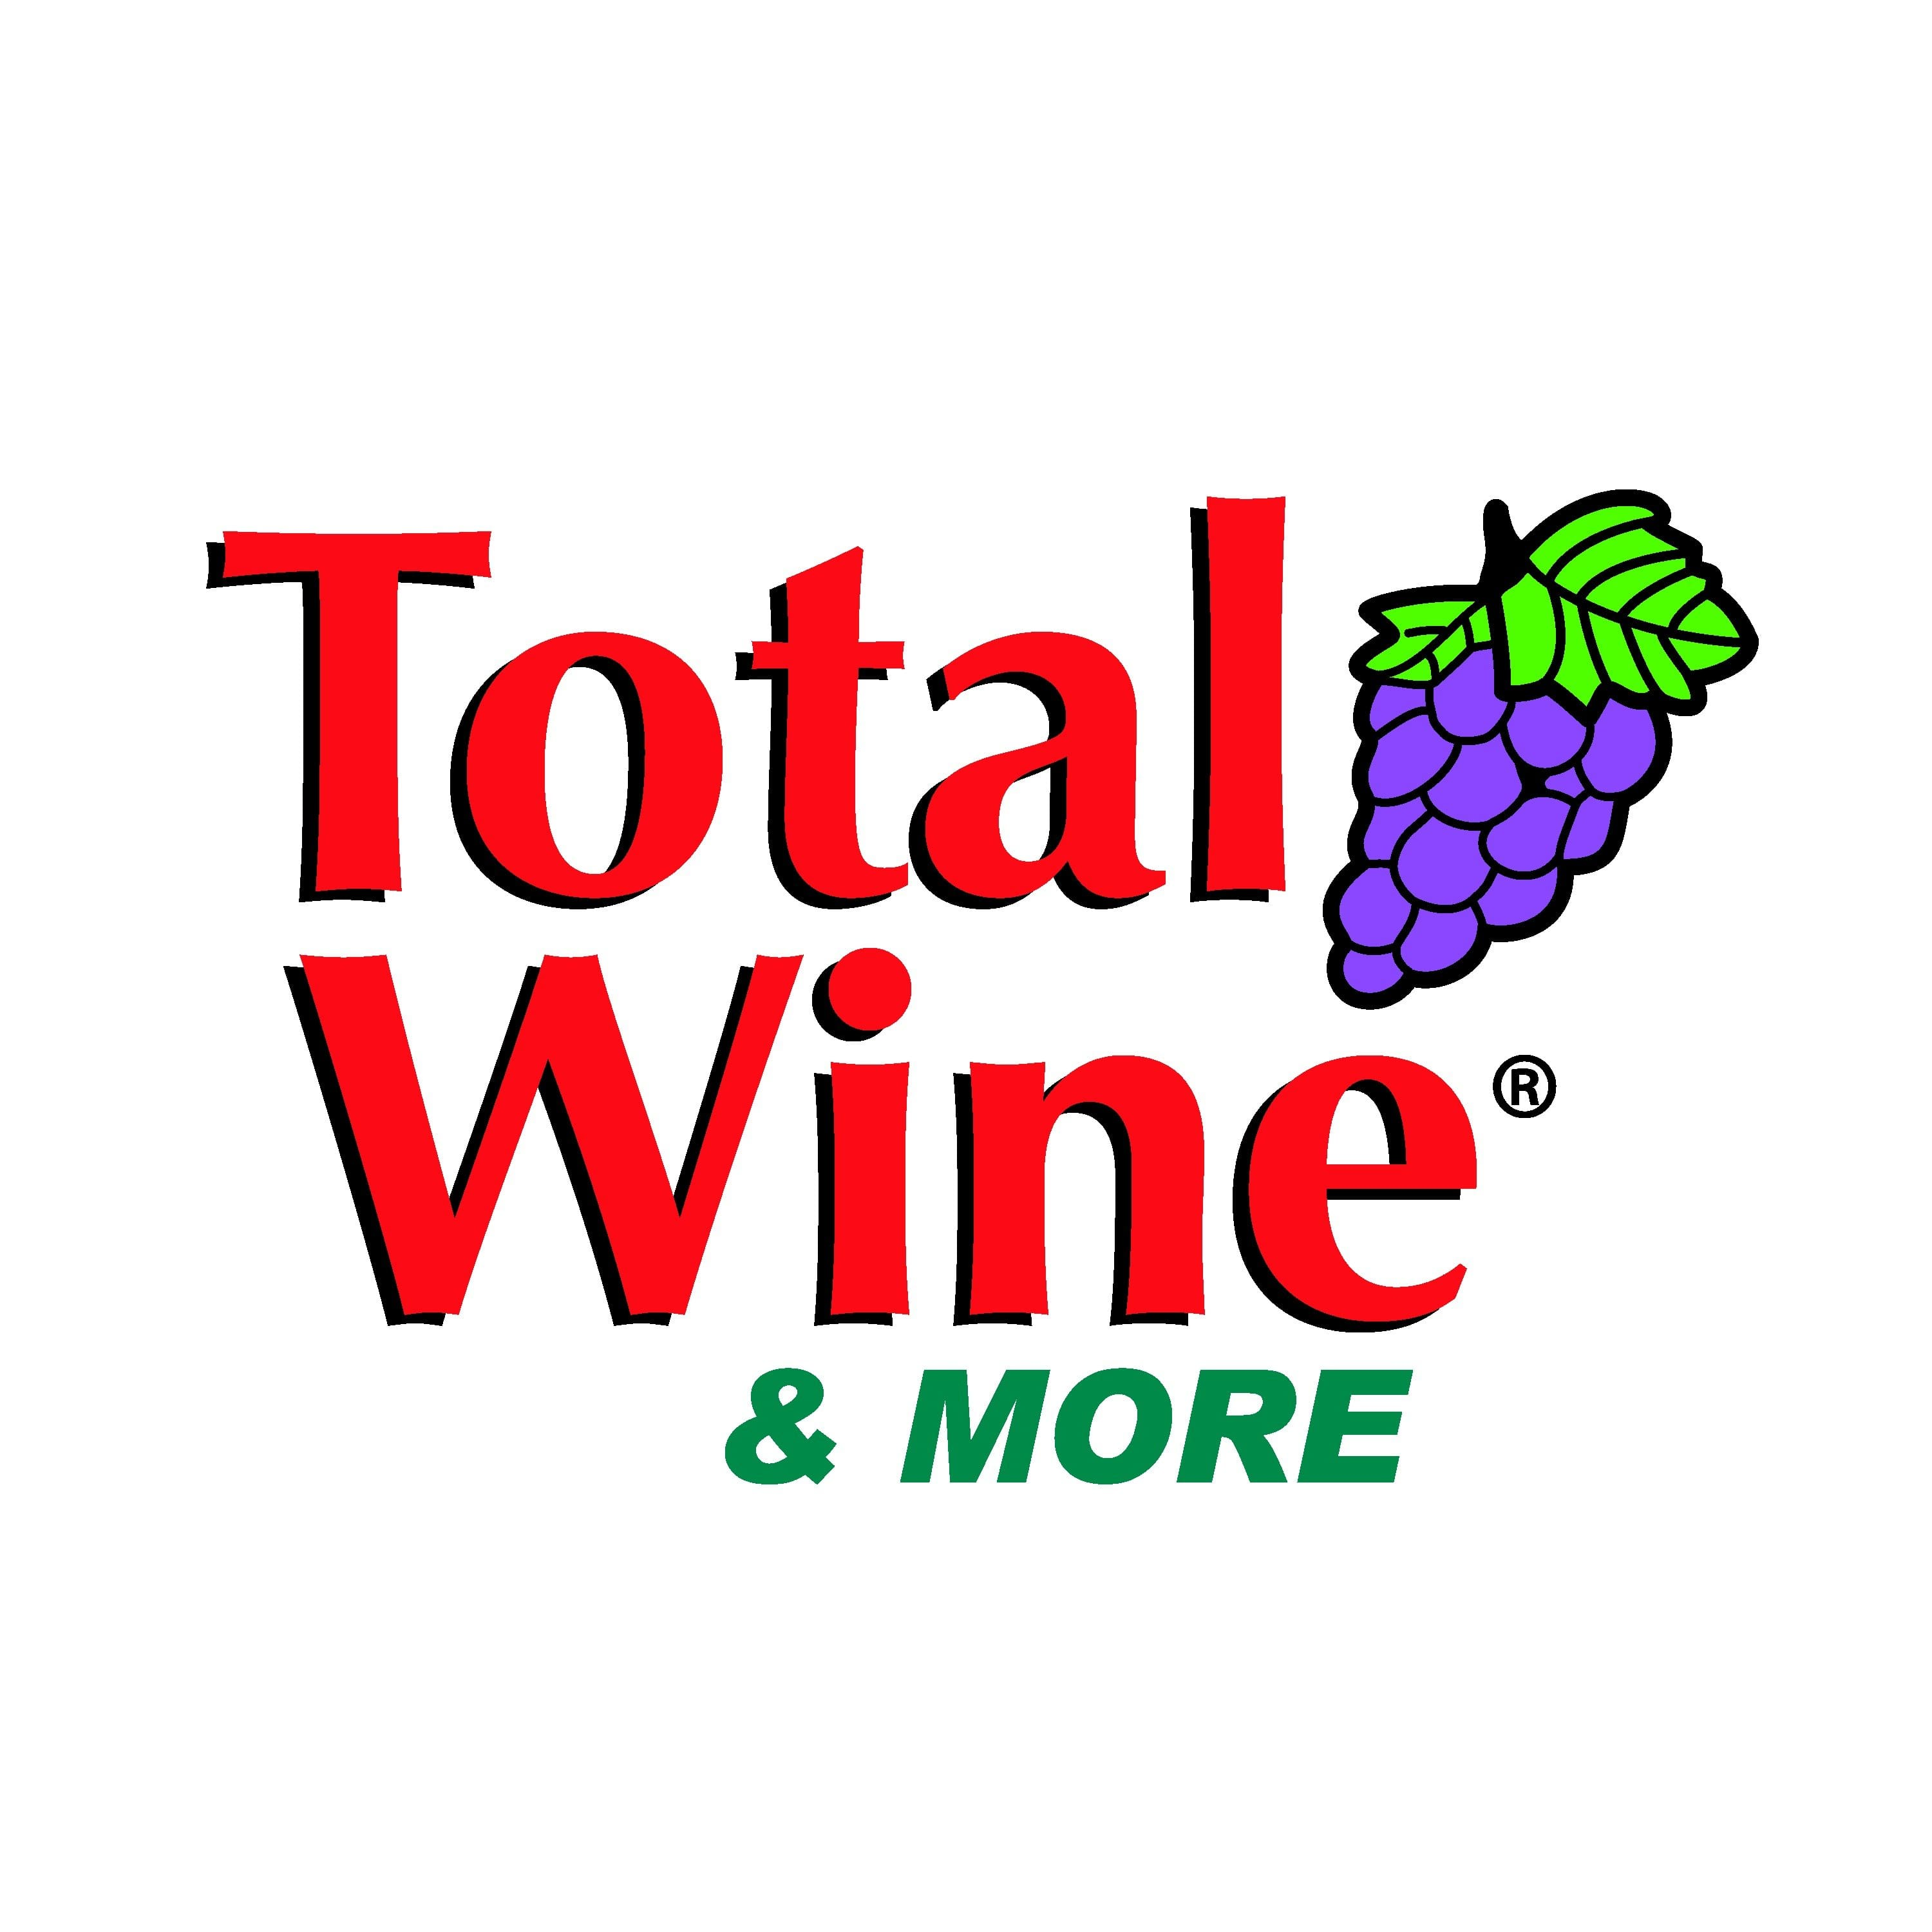 $5 off $5.01 at Totalwine (select states) 2 bottles for $1 and more